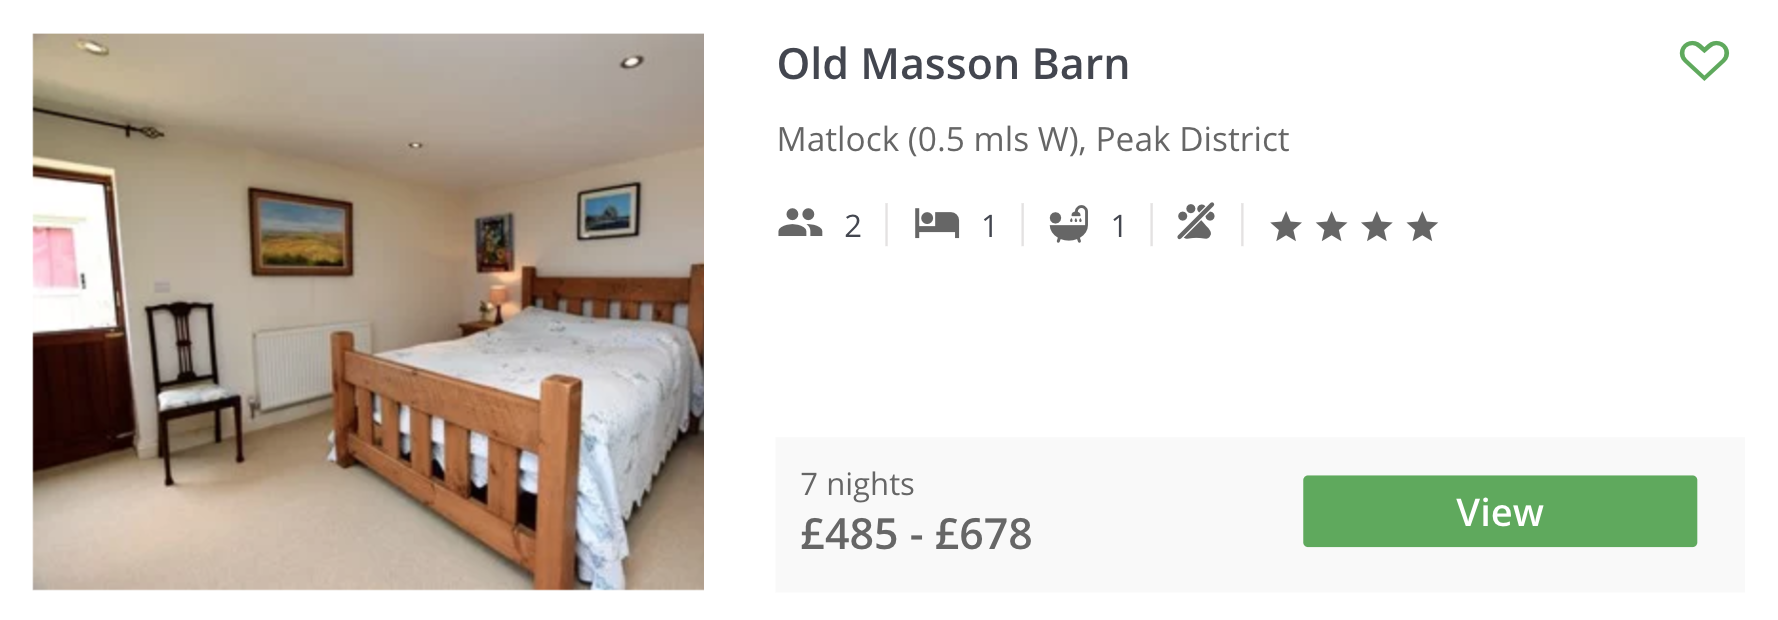 PEAK DISTRICT COTTAGE GUIDE - OLD MASSON BARN MATLOCK